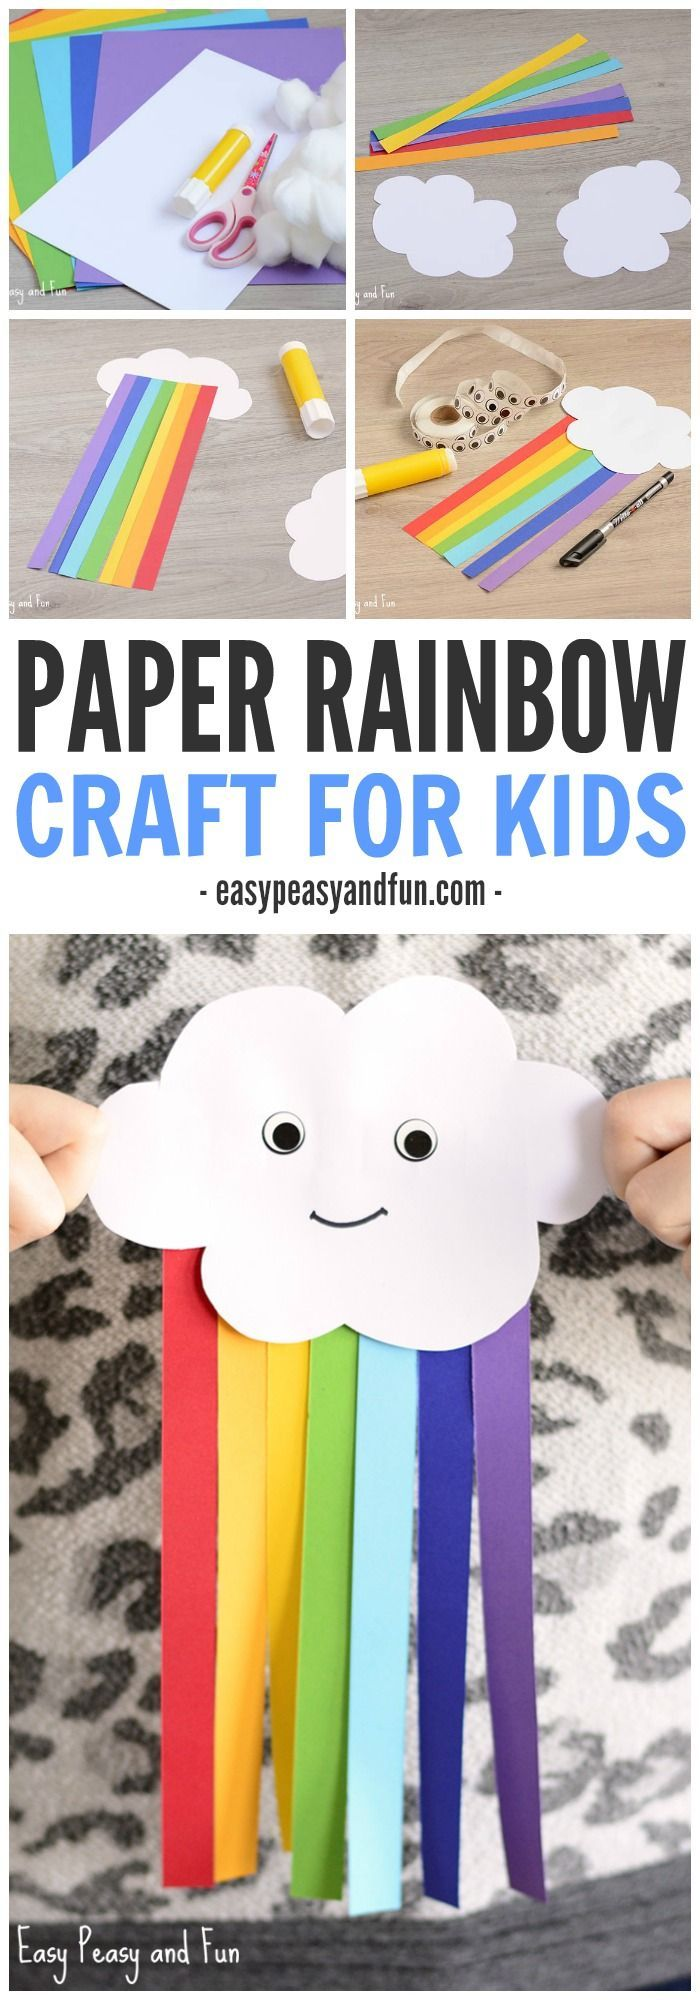 cute paper rainbow kid craft - Pictures Of Crafts For Kids